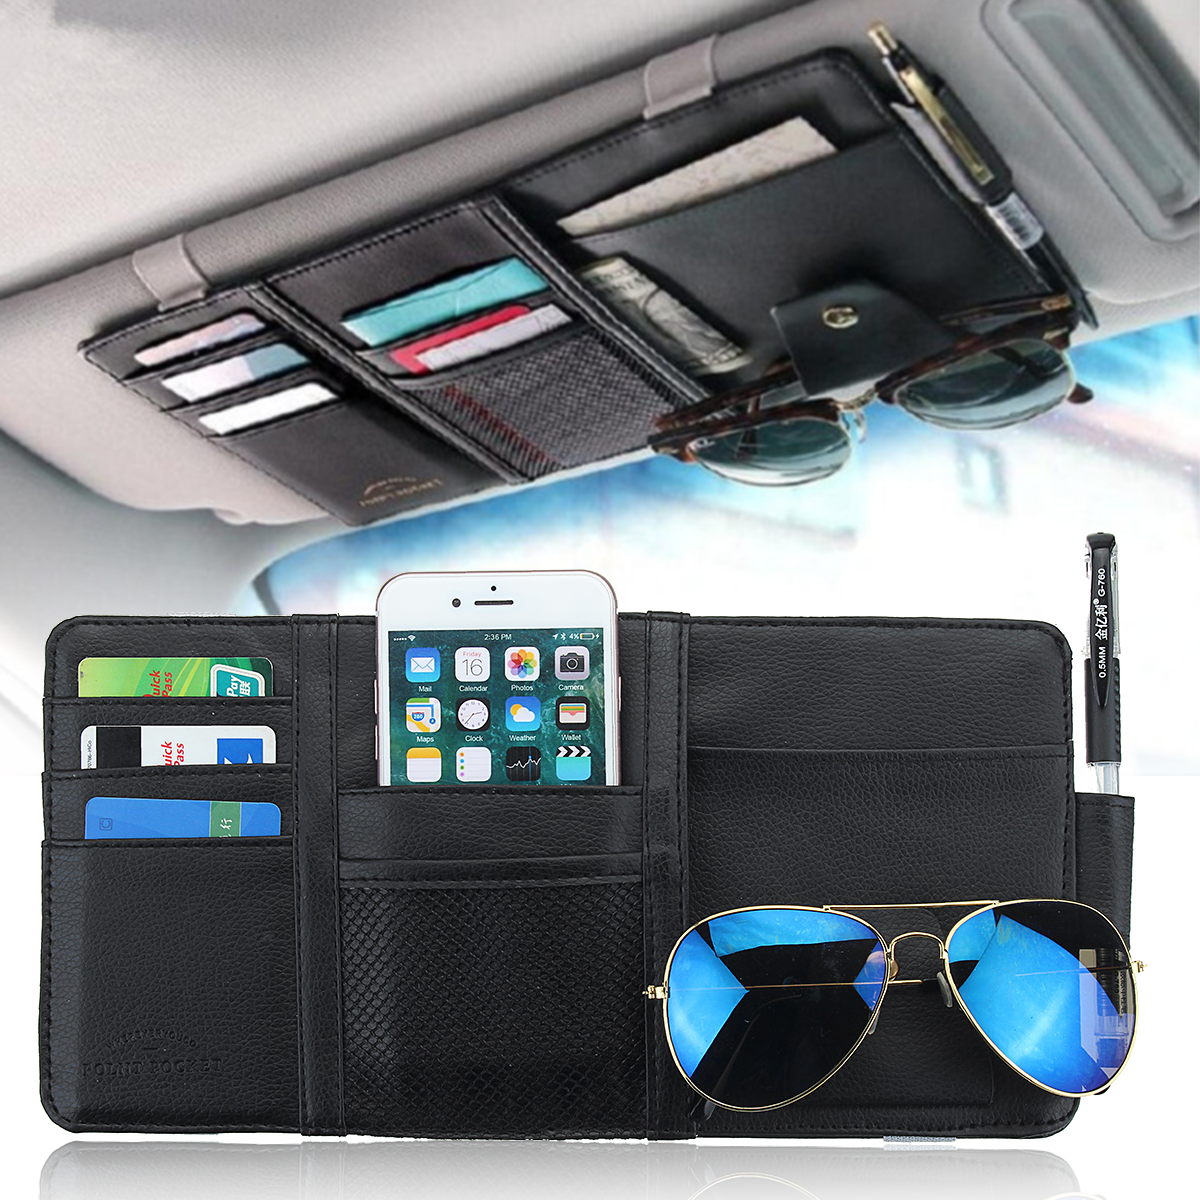 Car Sun Visor Organizer Card Glasses Business Card Storage Holder Case Bag Multi-Pocket